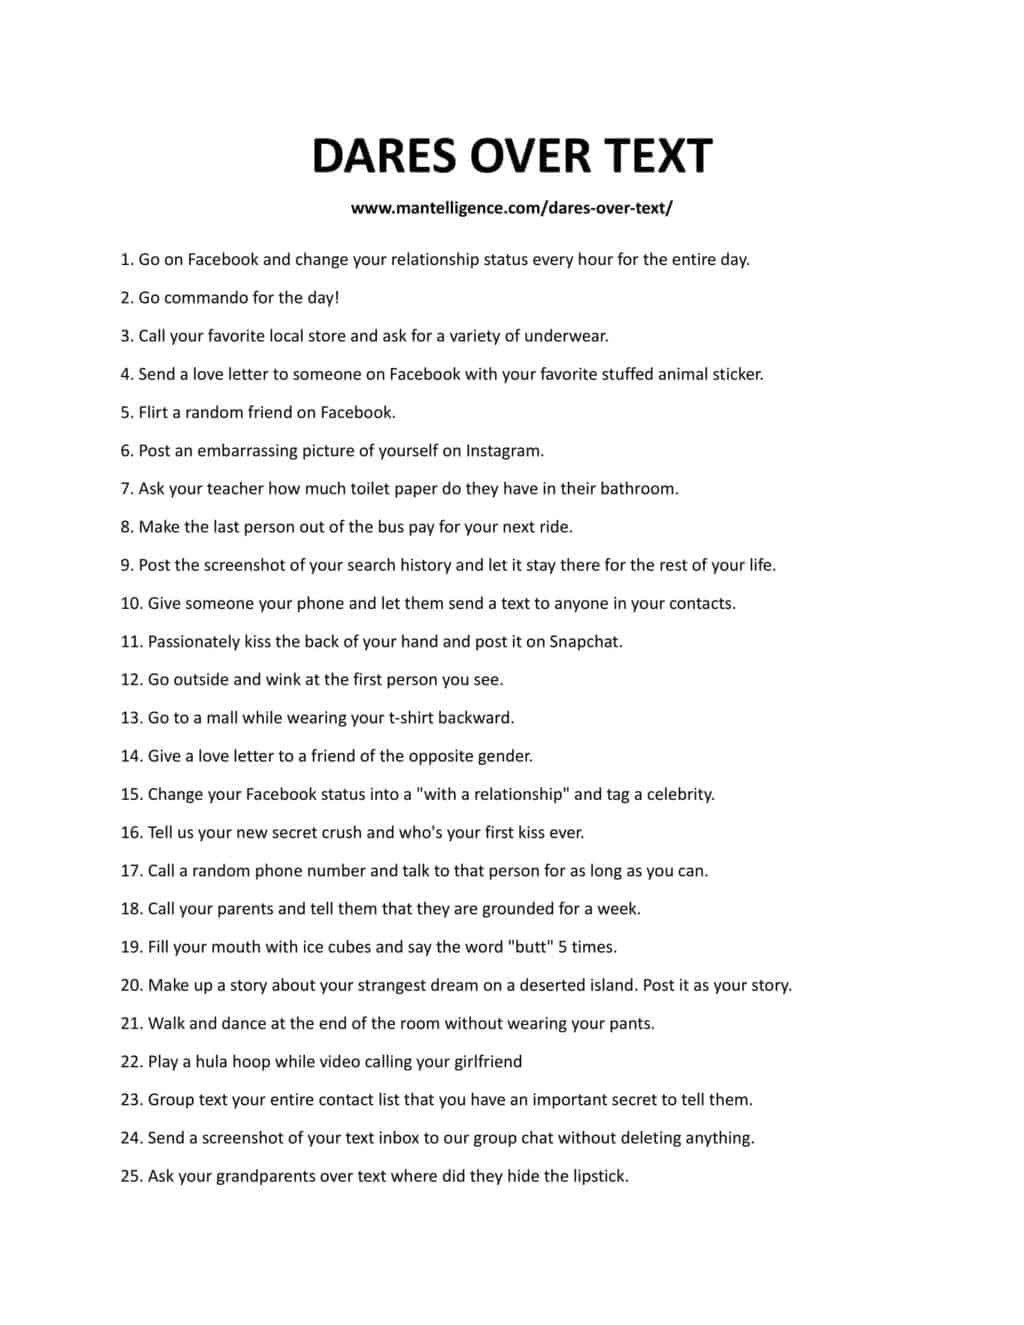 Downloadable list of dares